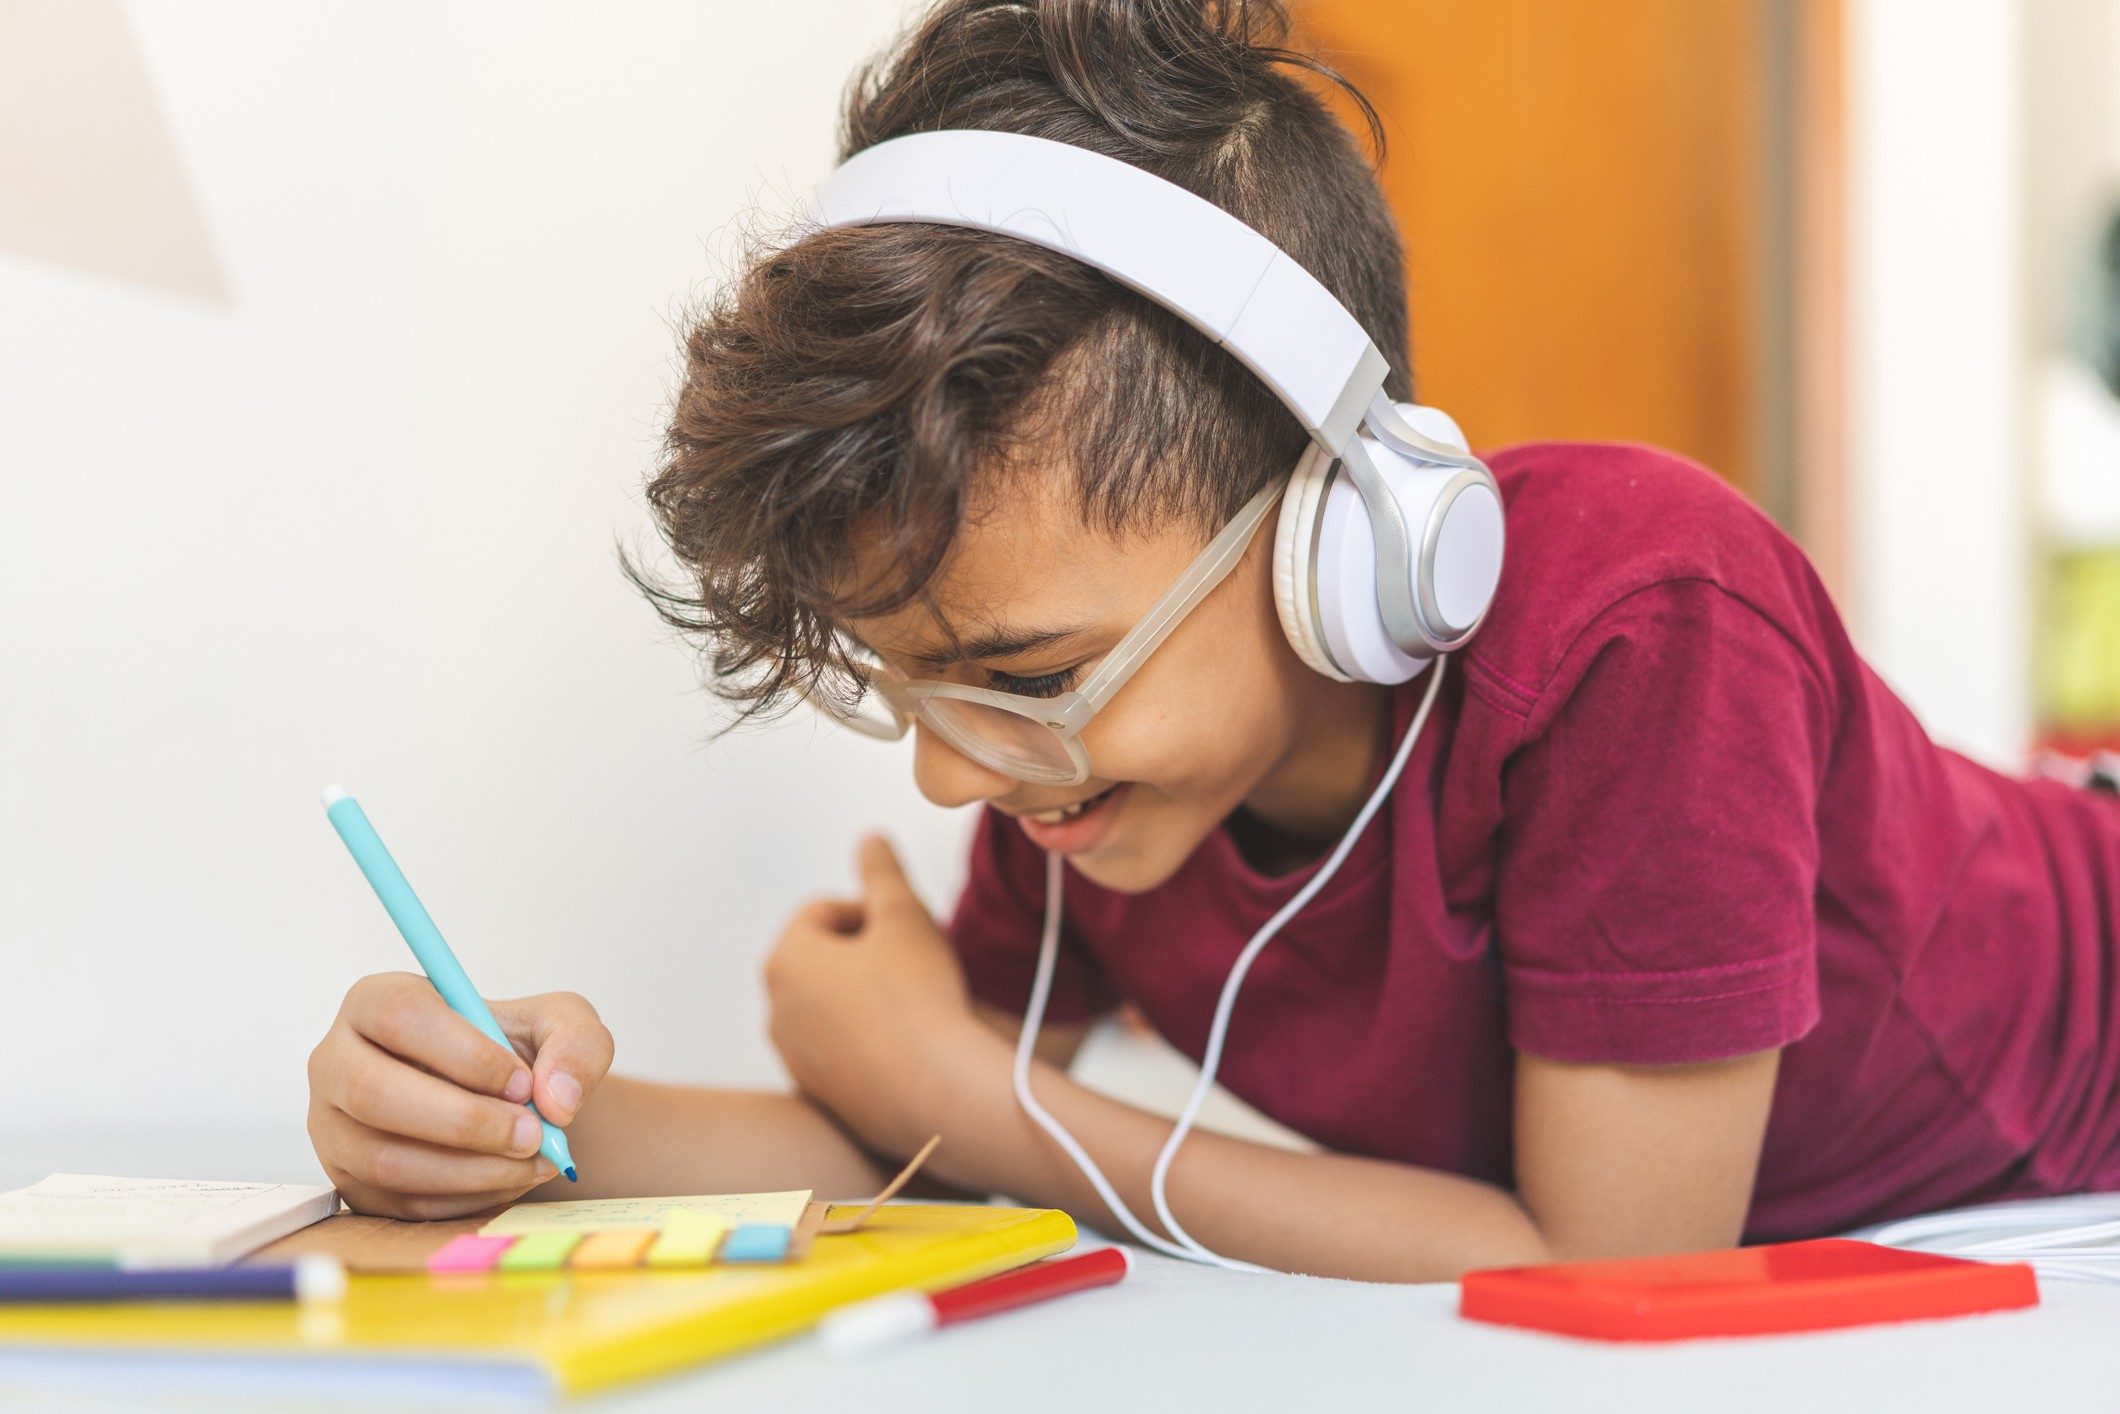 Child listening to headphones and smiling while writing notes.